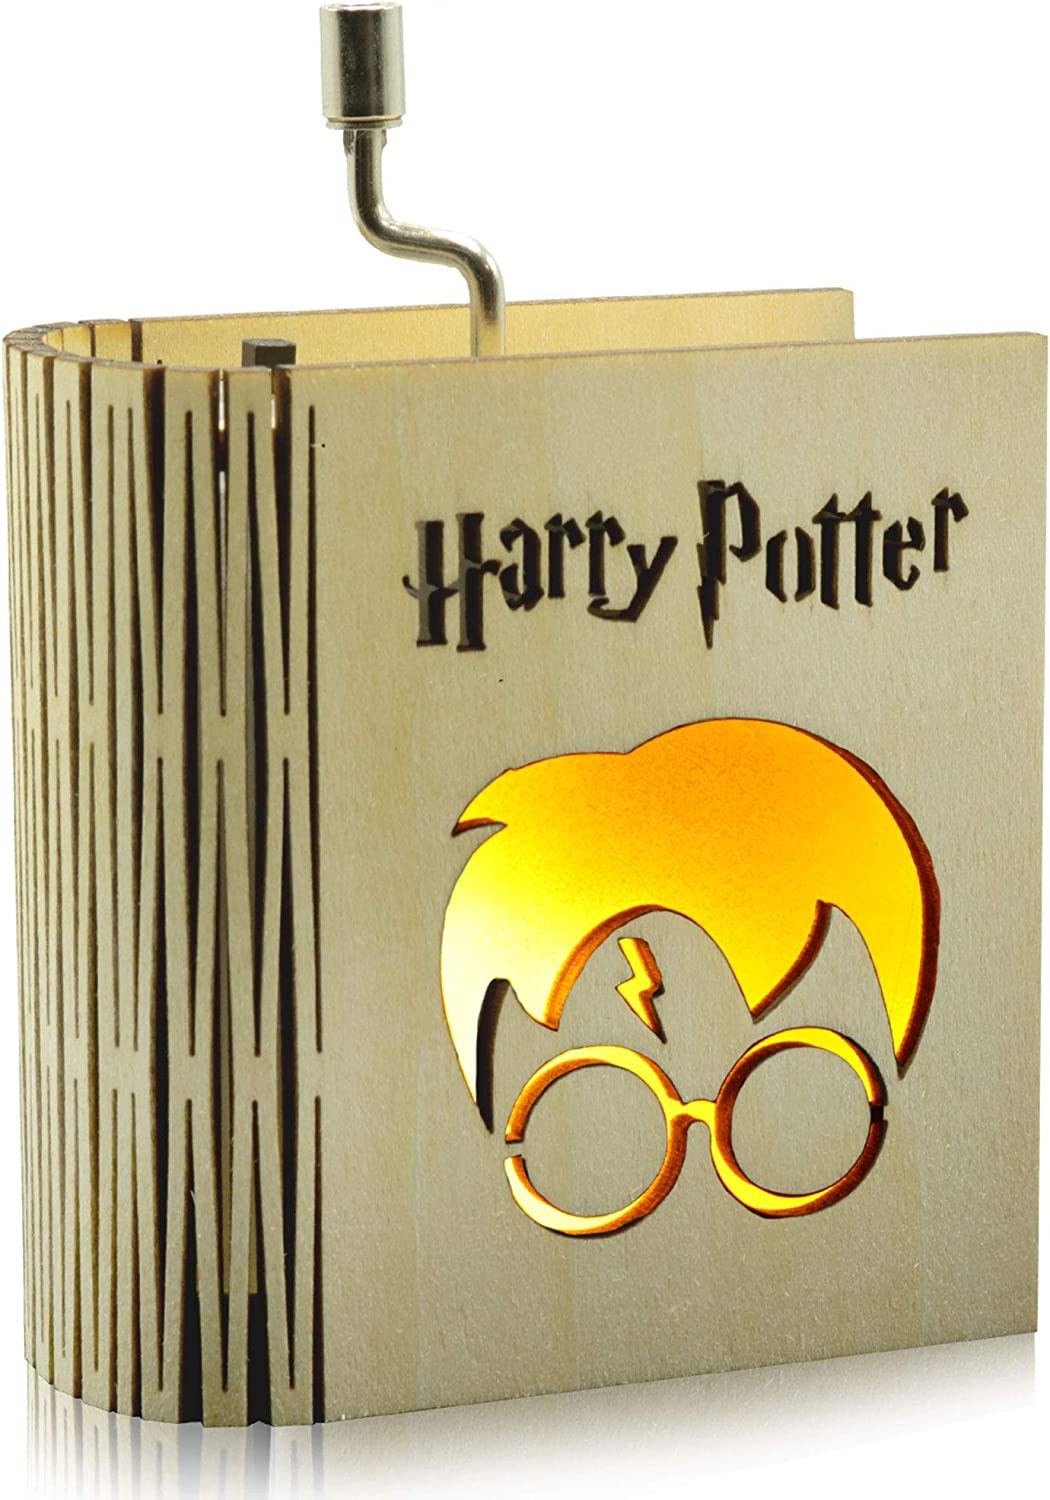 CraftsToCollect Harry Potter - Caja de Música con luz: Amazon.es ...